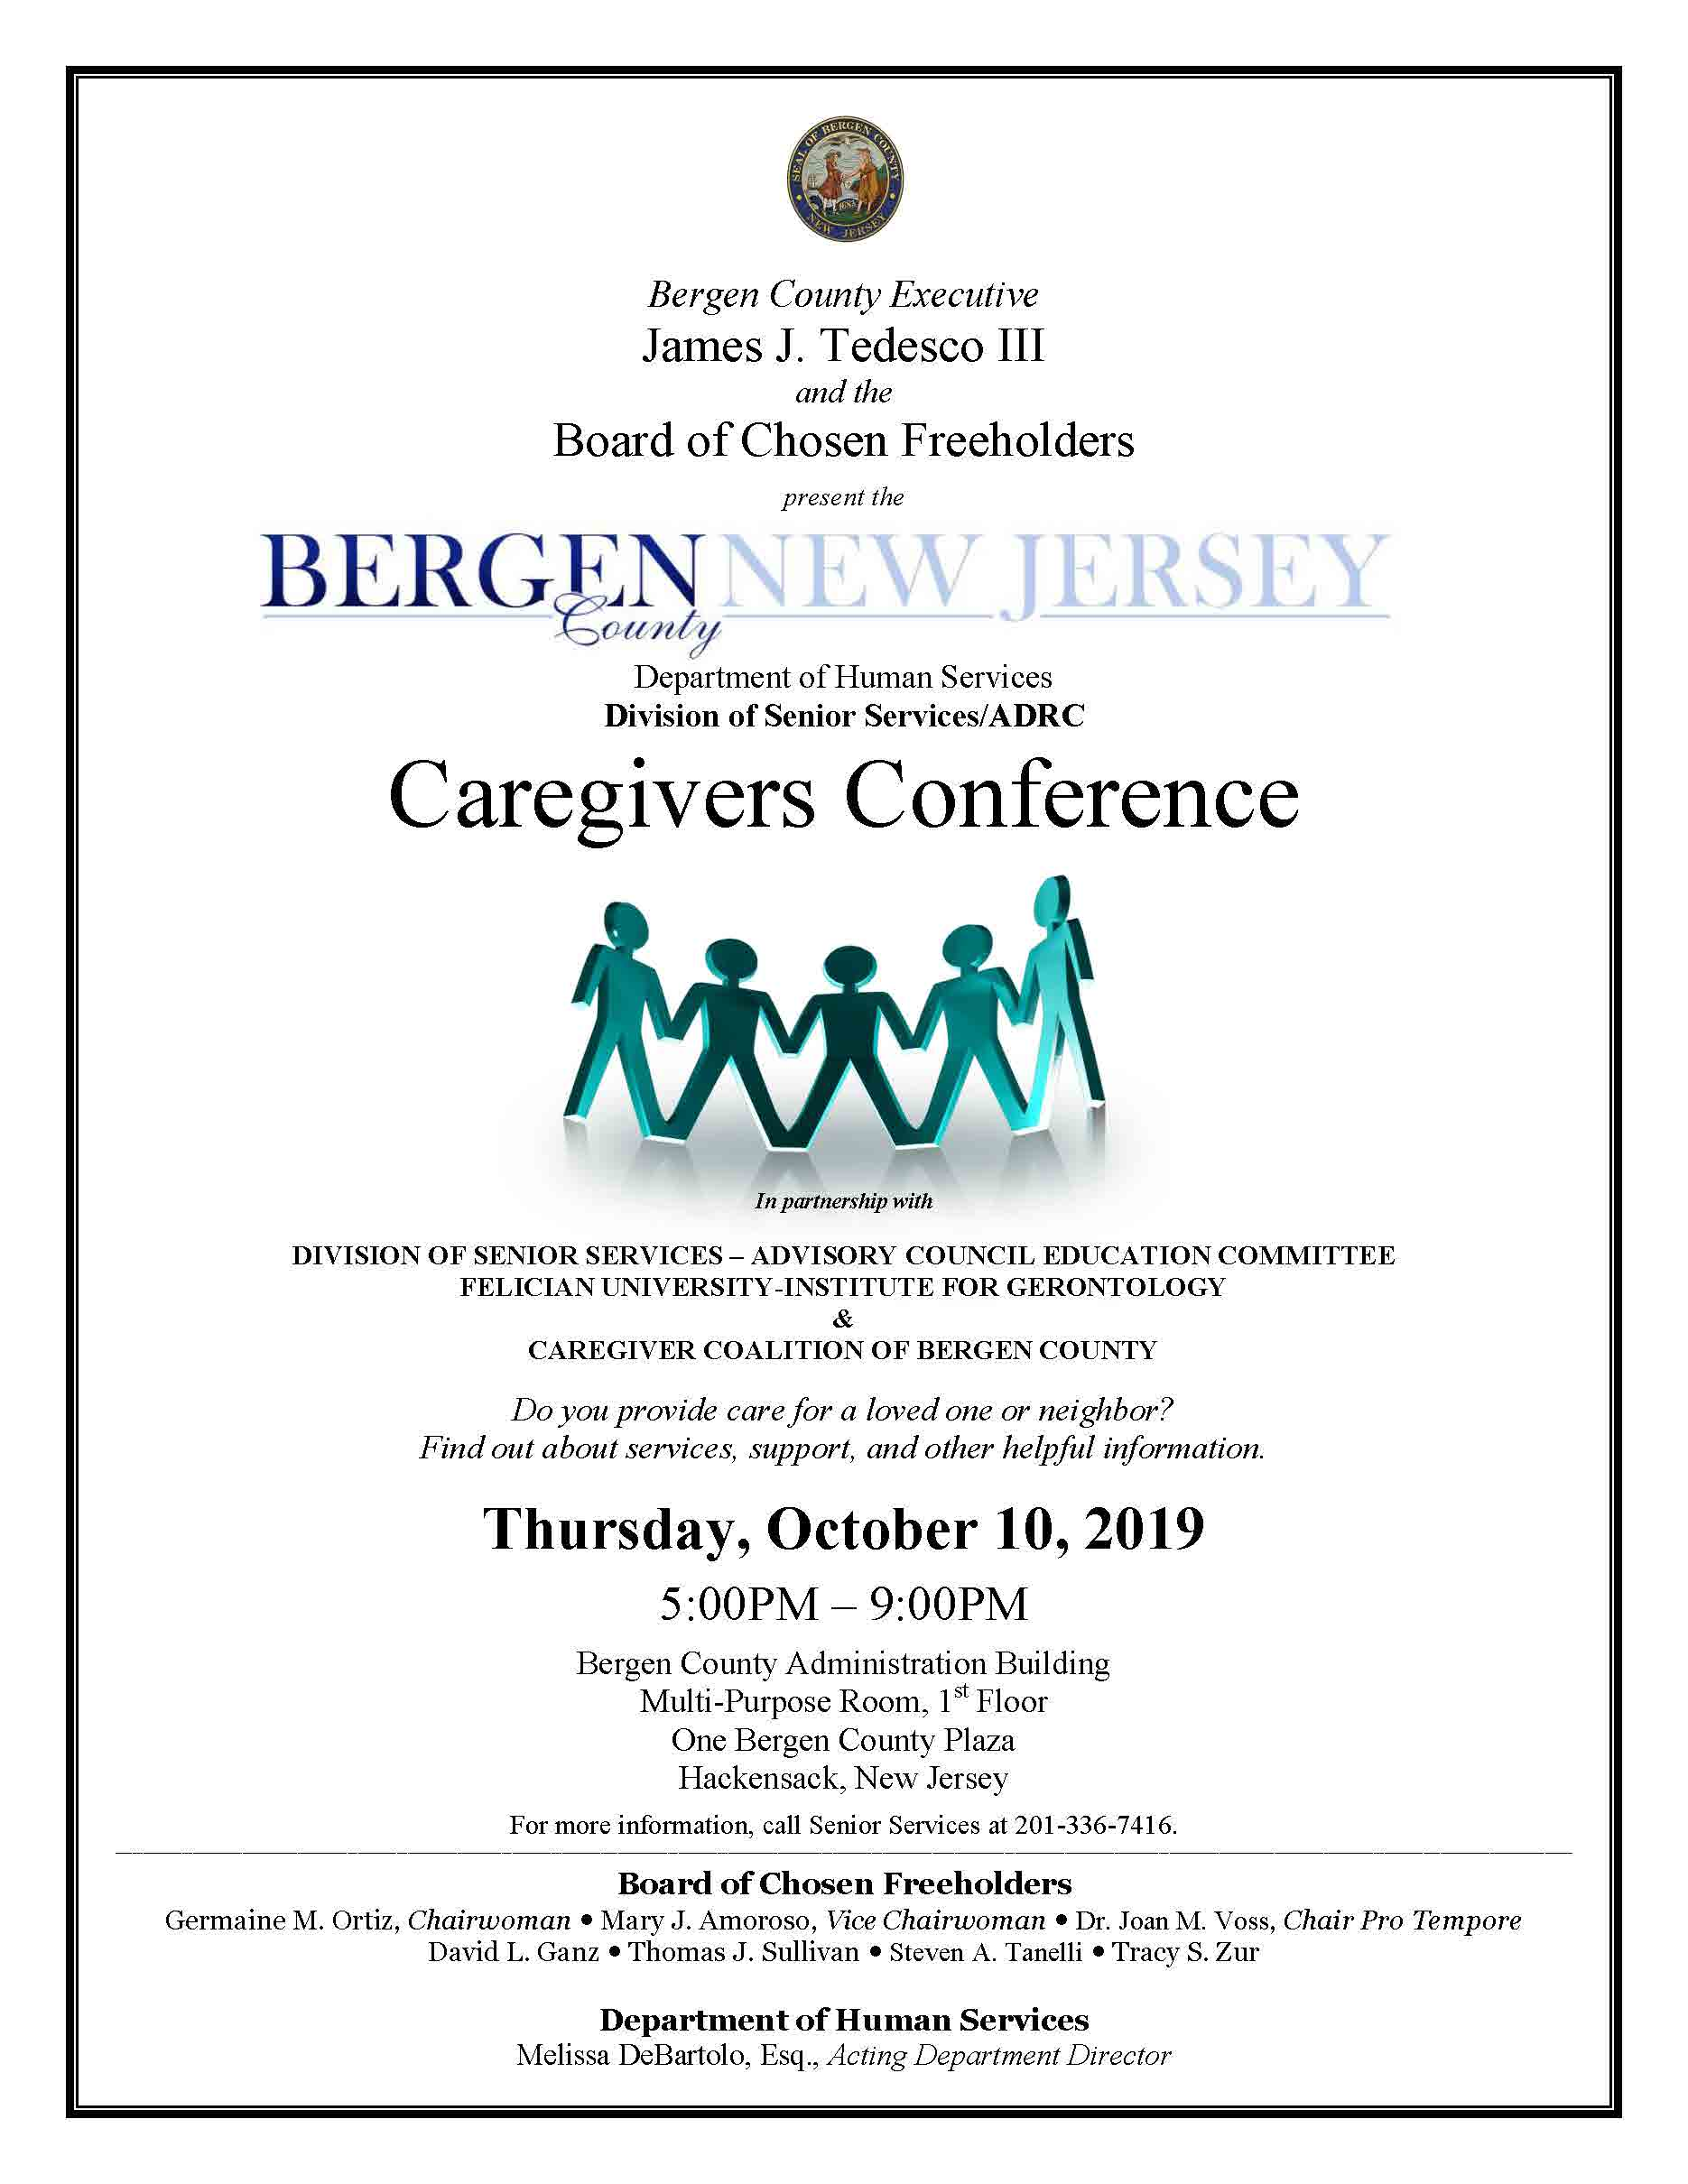 Fall Caregivers Conference Flyer 2019